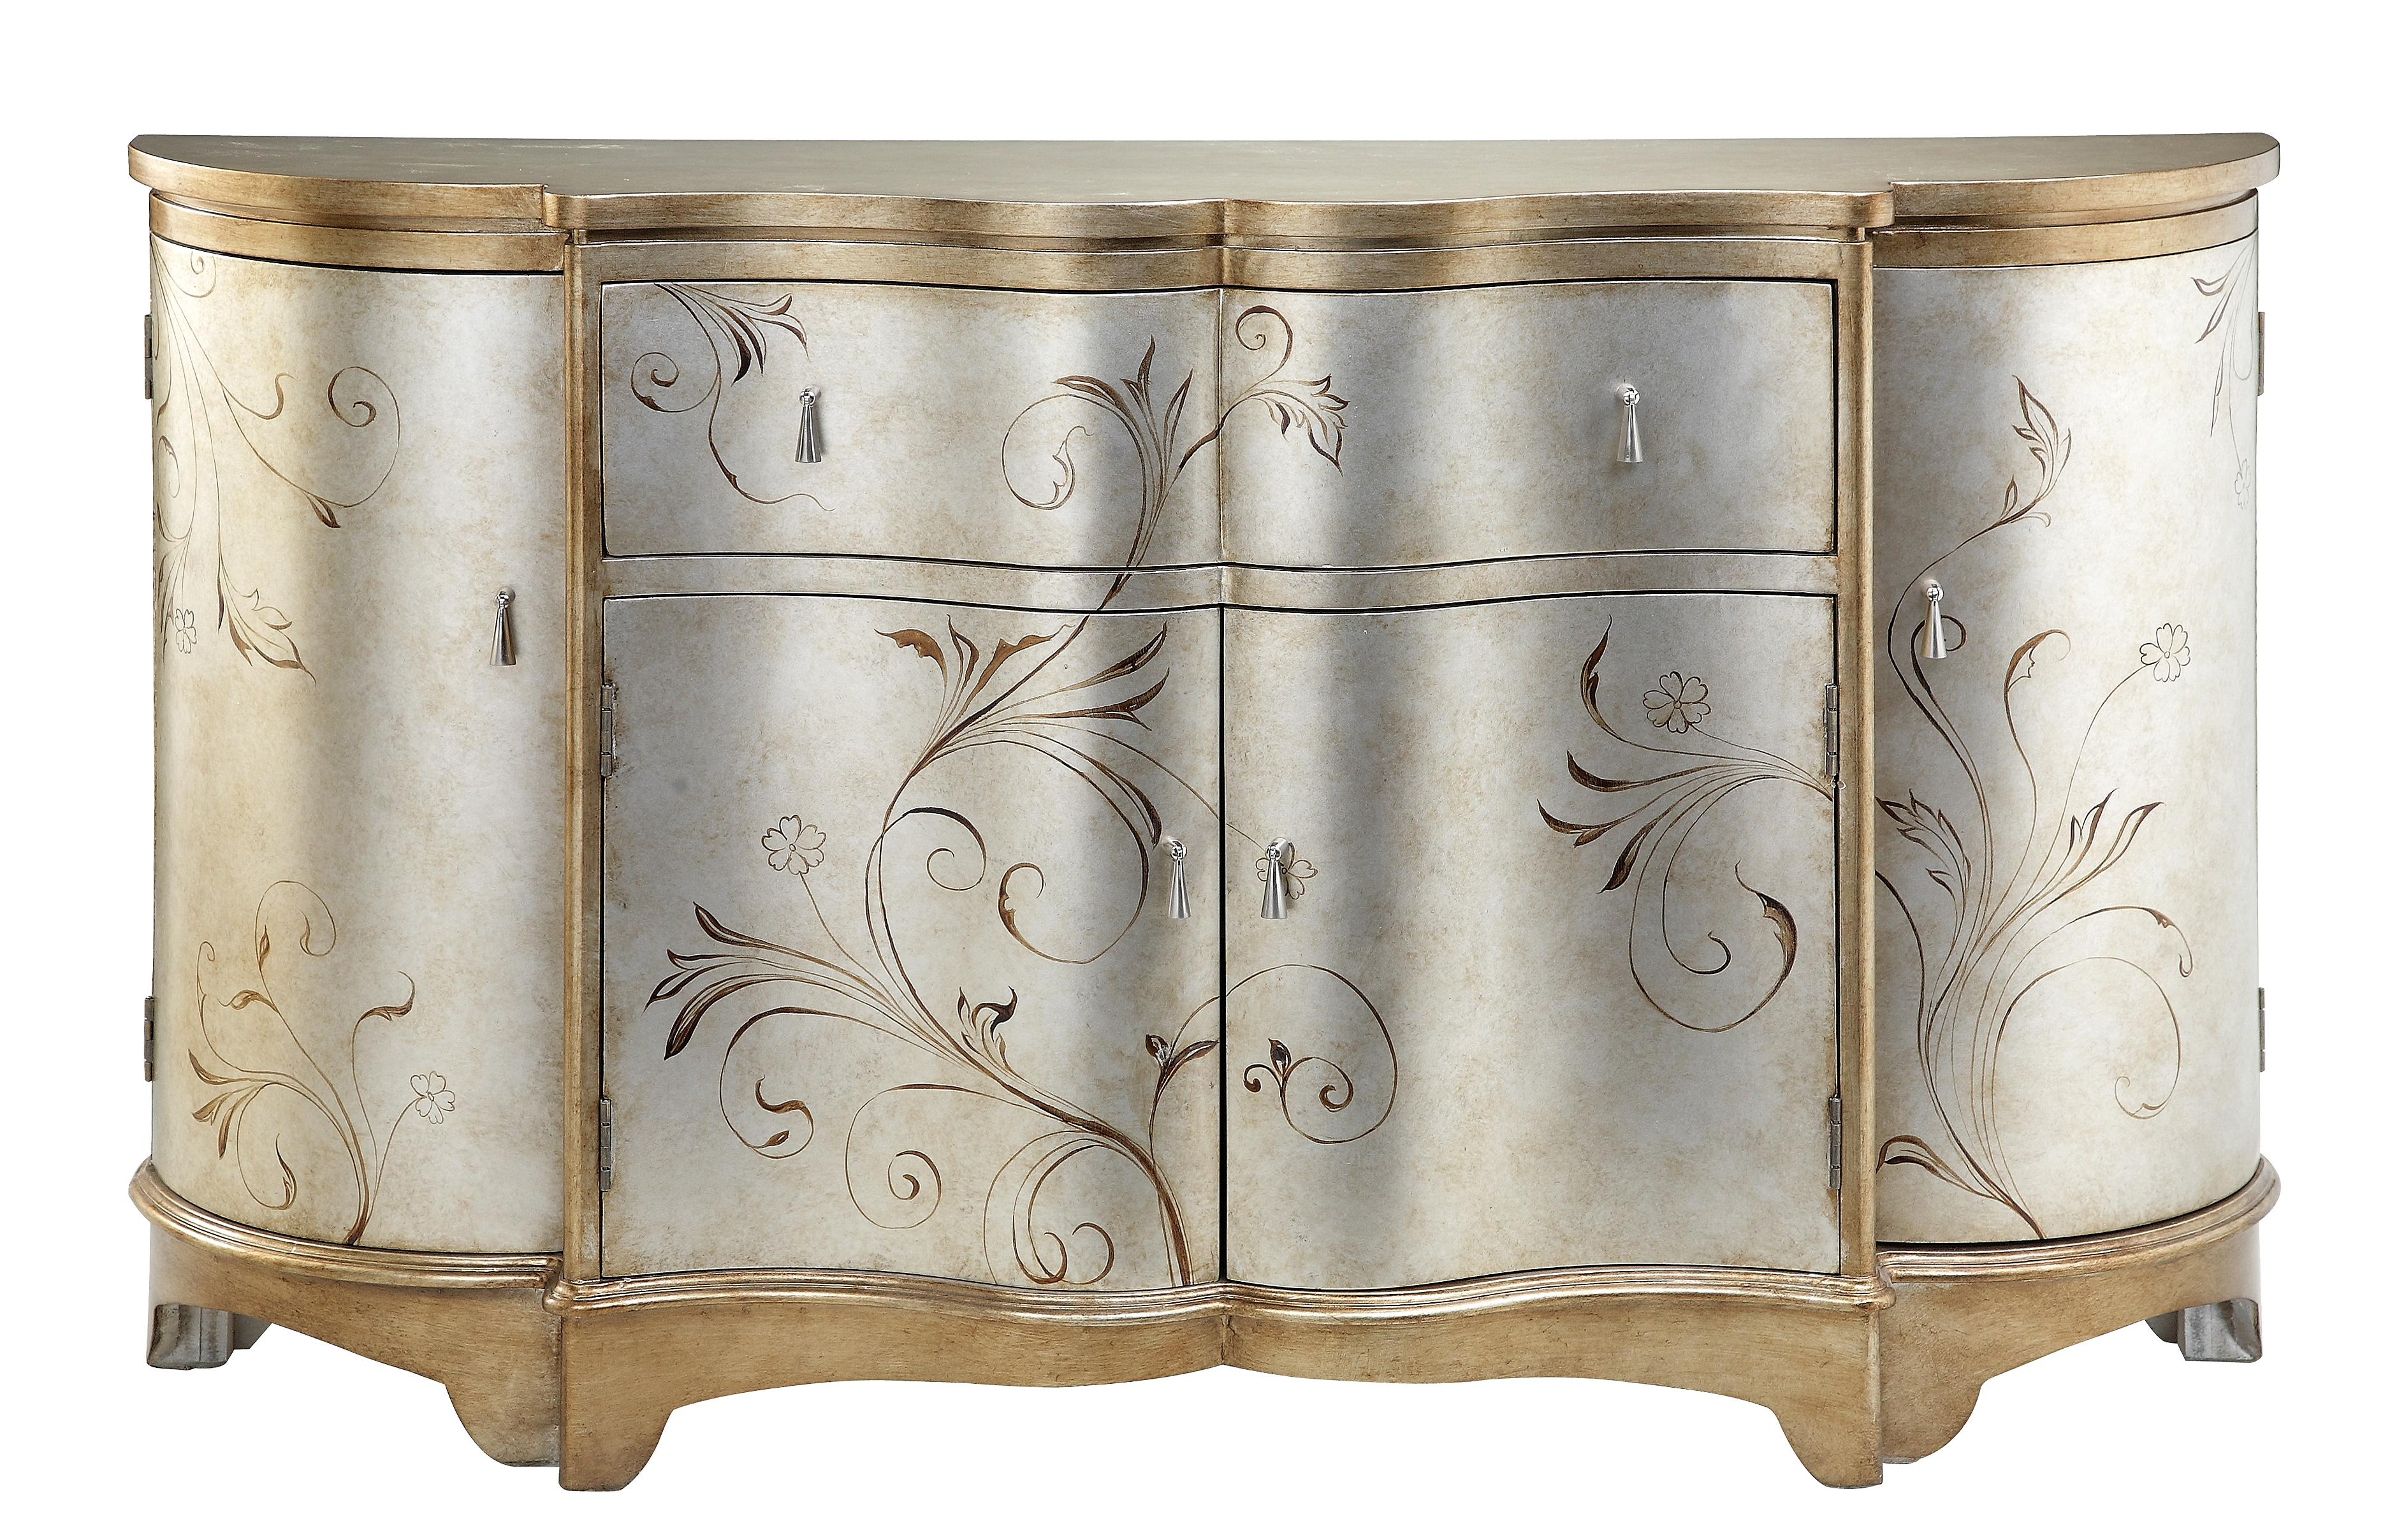 Stein World Credenzas Credenza   Item Number: 64701